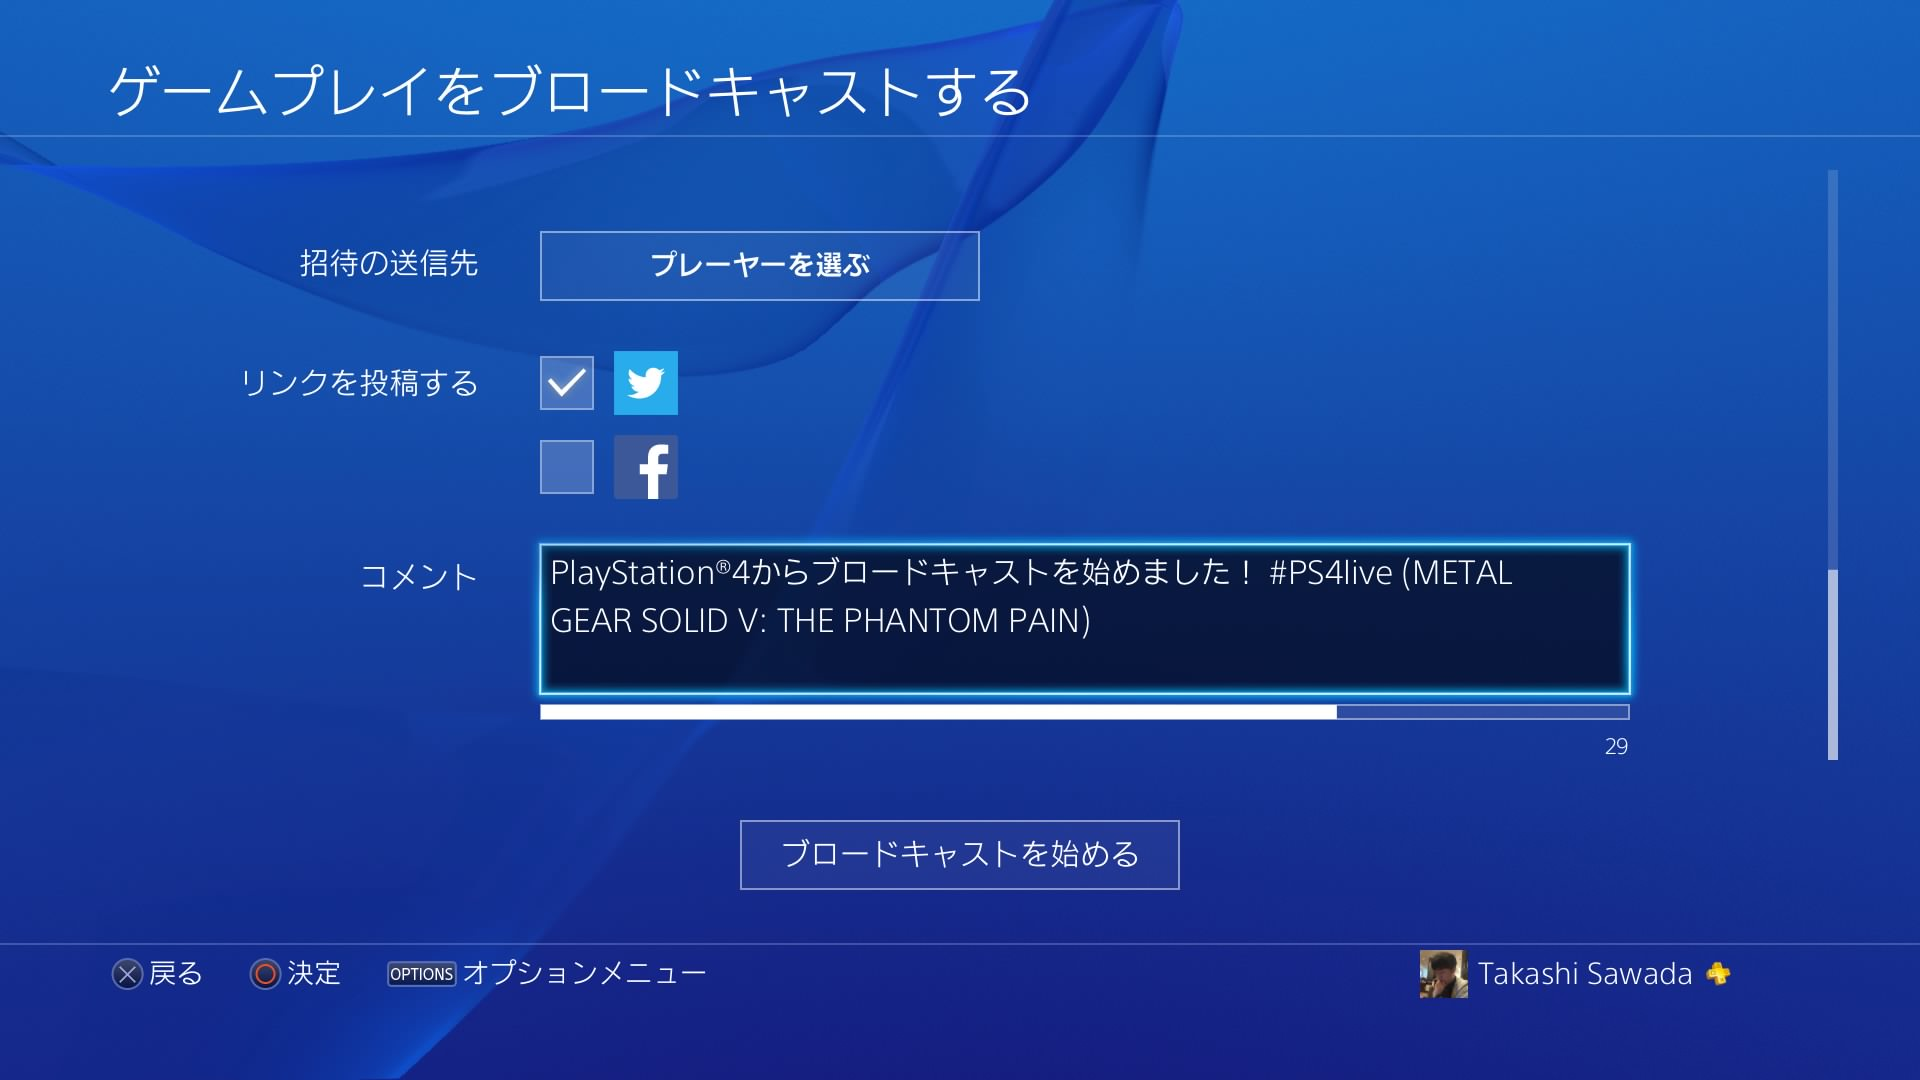 How to broadcast game playing from playstation 4 7